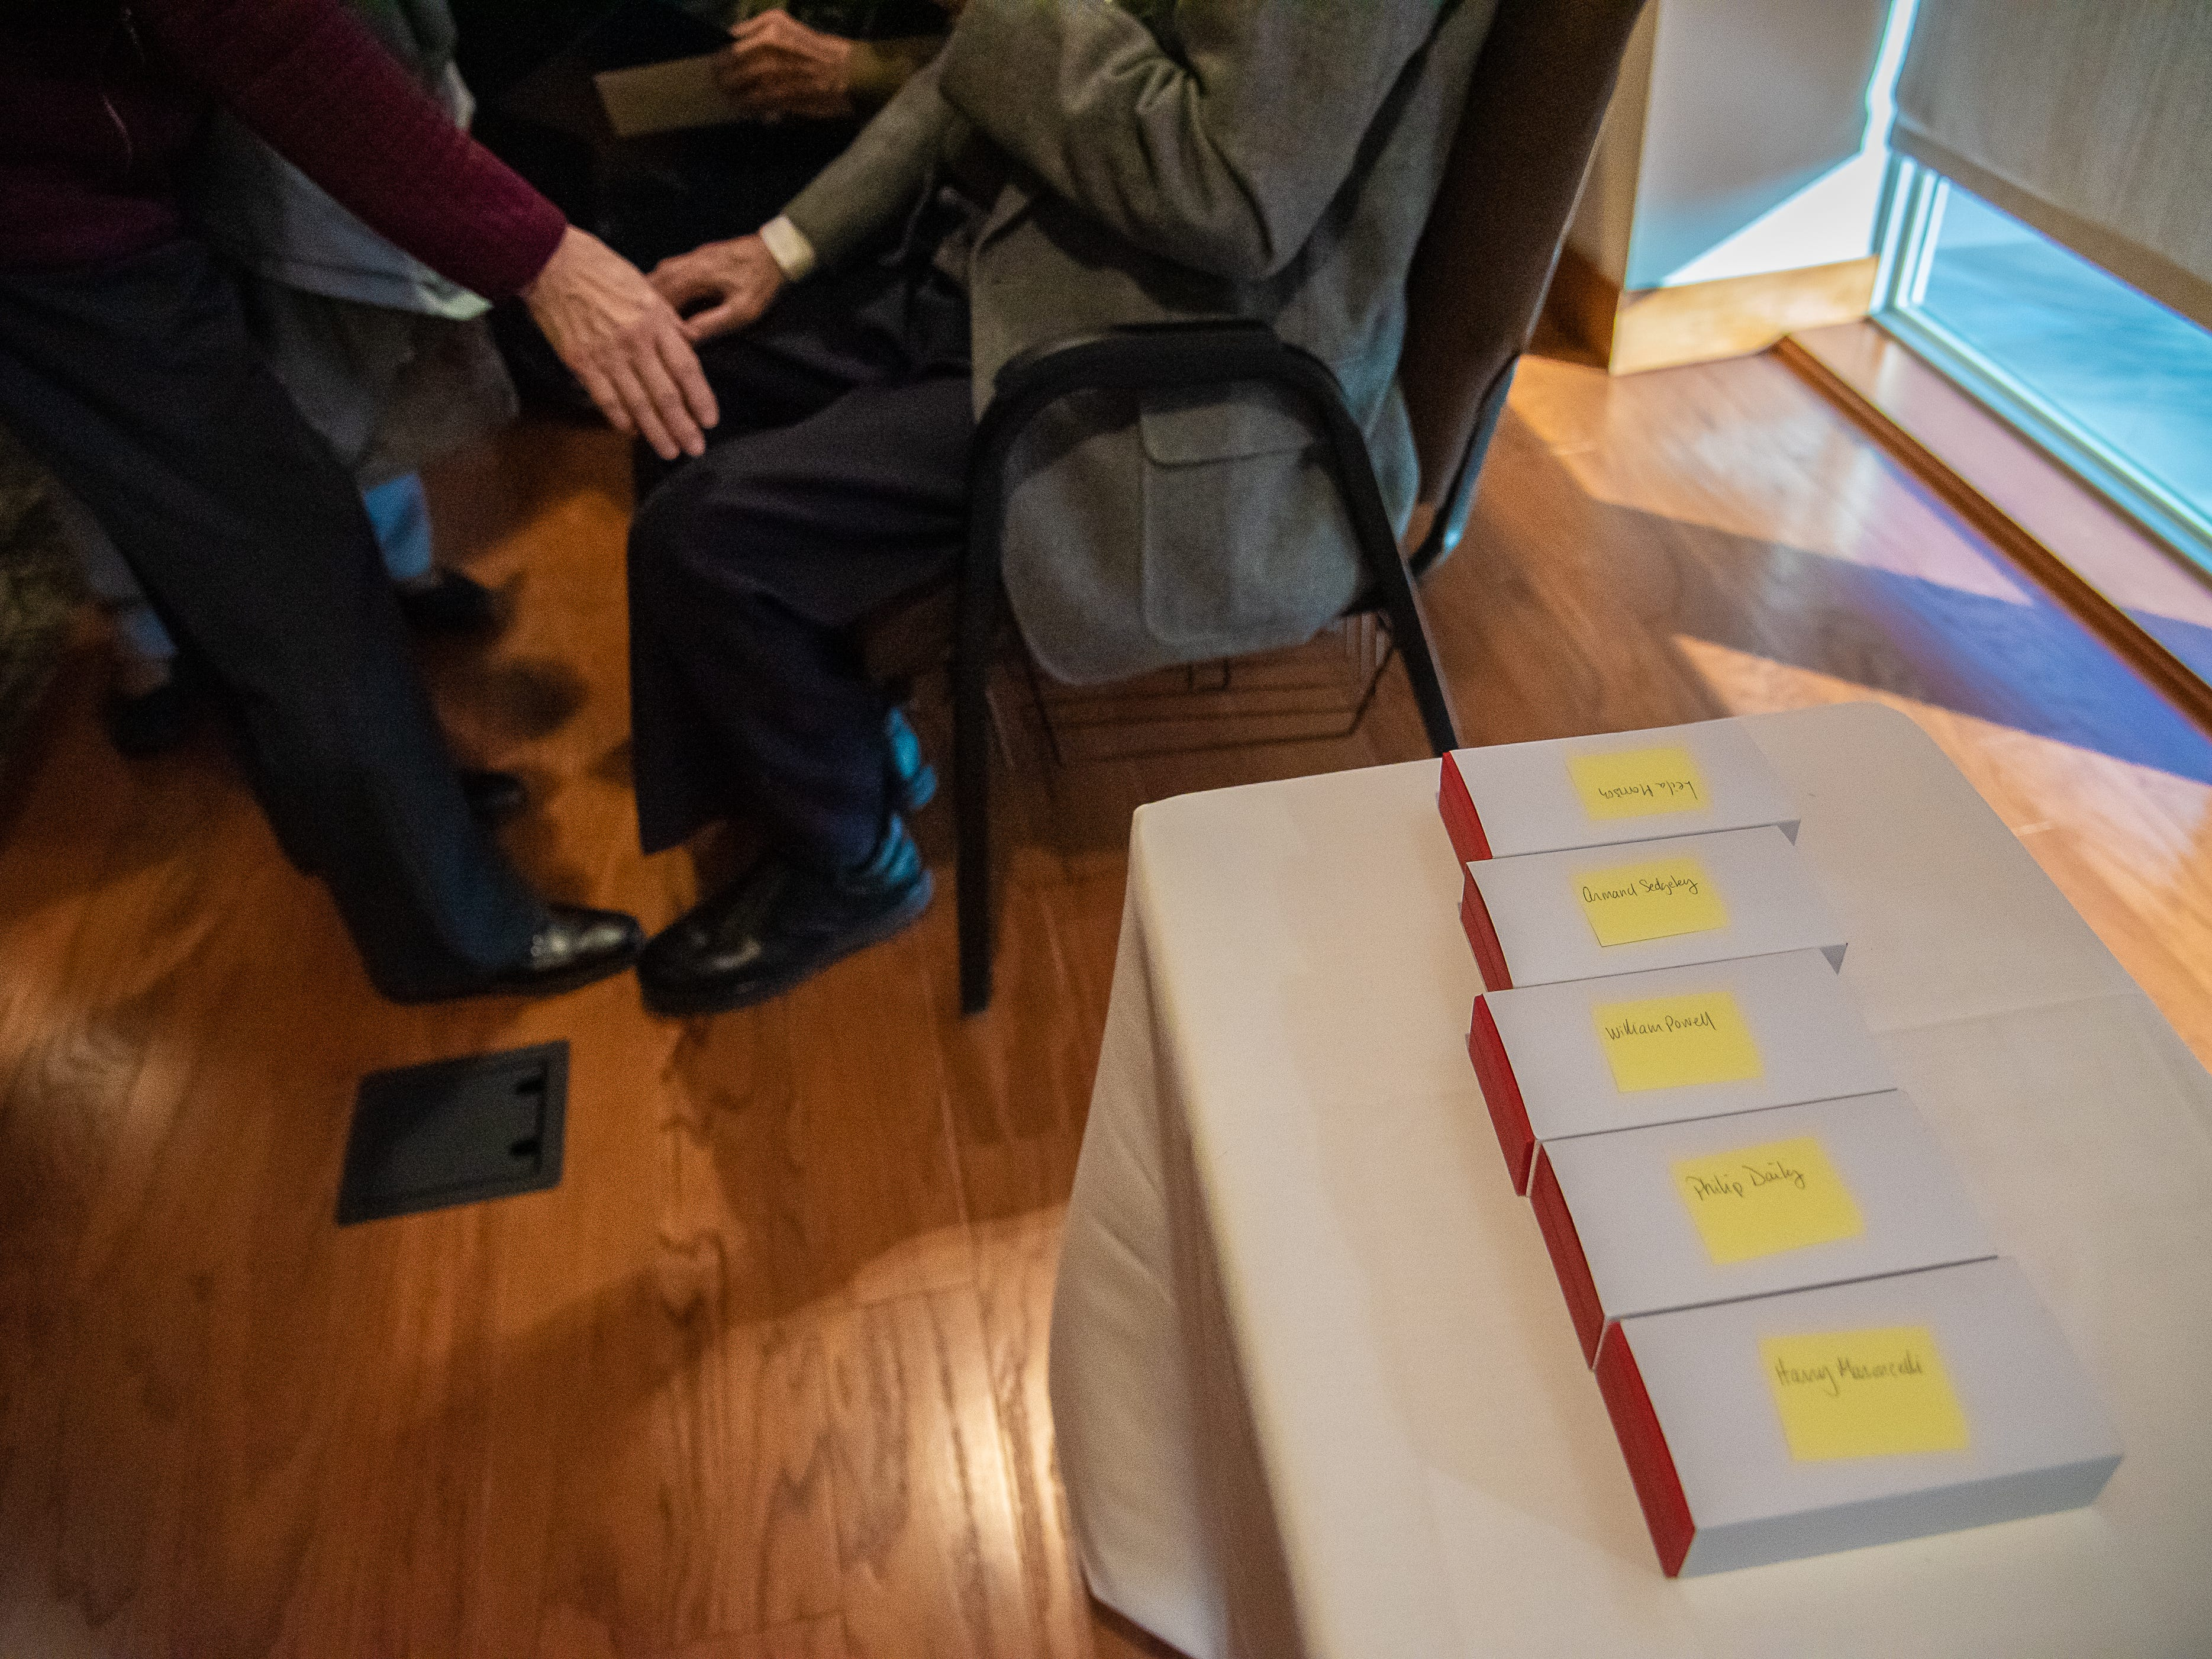 French Legion of Honor Medals are boxed and labeled with the names of five local World War II veterans following a presentation ceremony on Monday, February 4, 2019, at the Good Samaritan Water Valley Resort in Windsor.